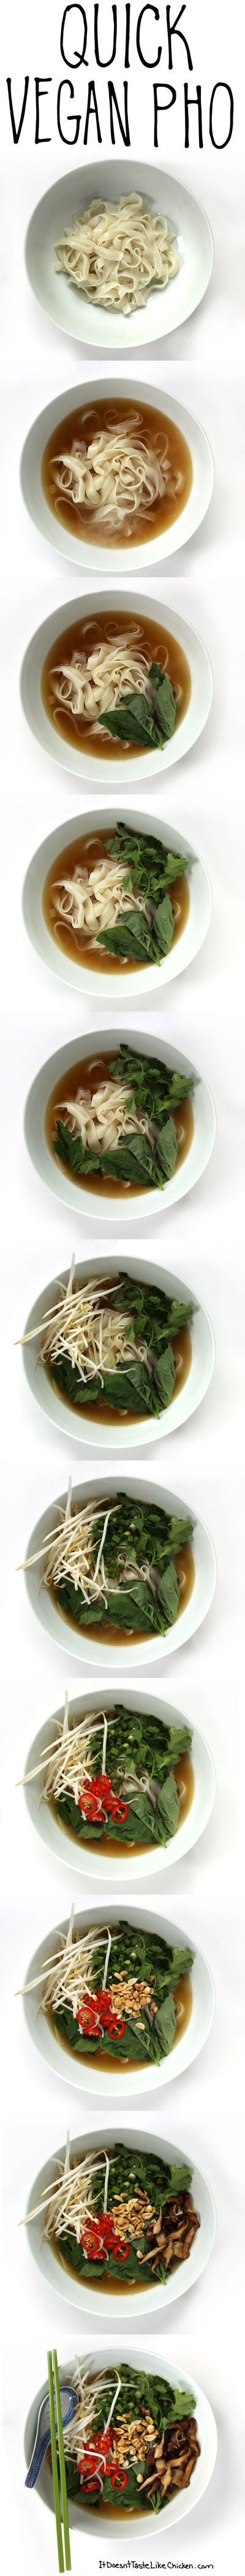 Quick Vegan Pho. 30 minutes to make. Very nutritious. Great for fighting away winter colds! #itdoesnttastelikechicken